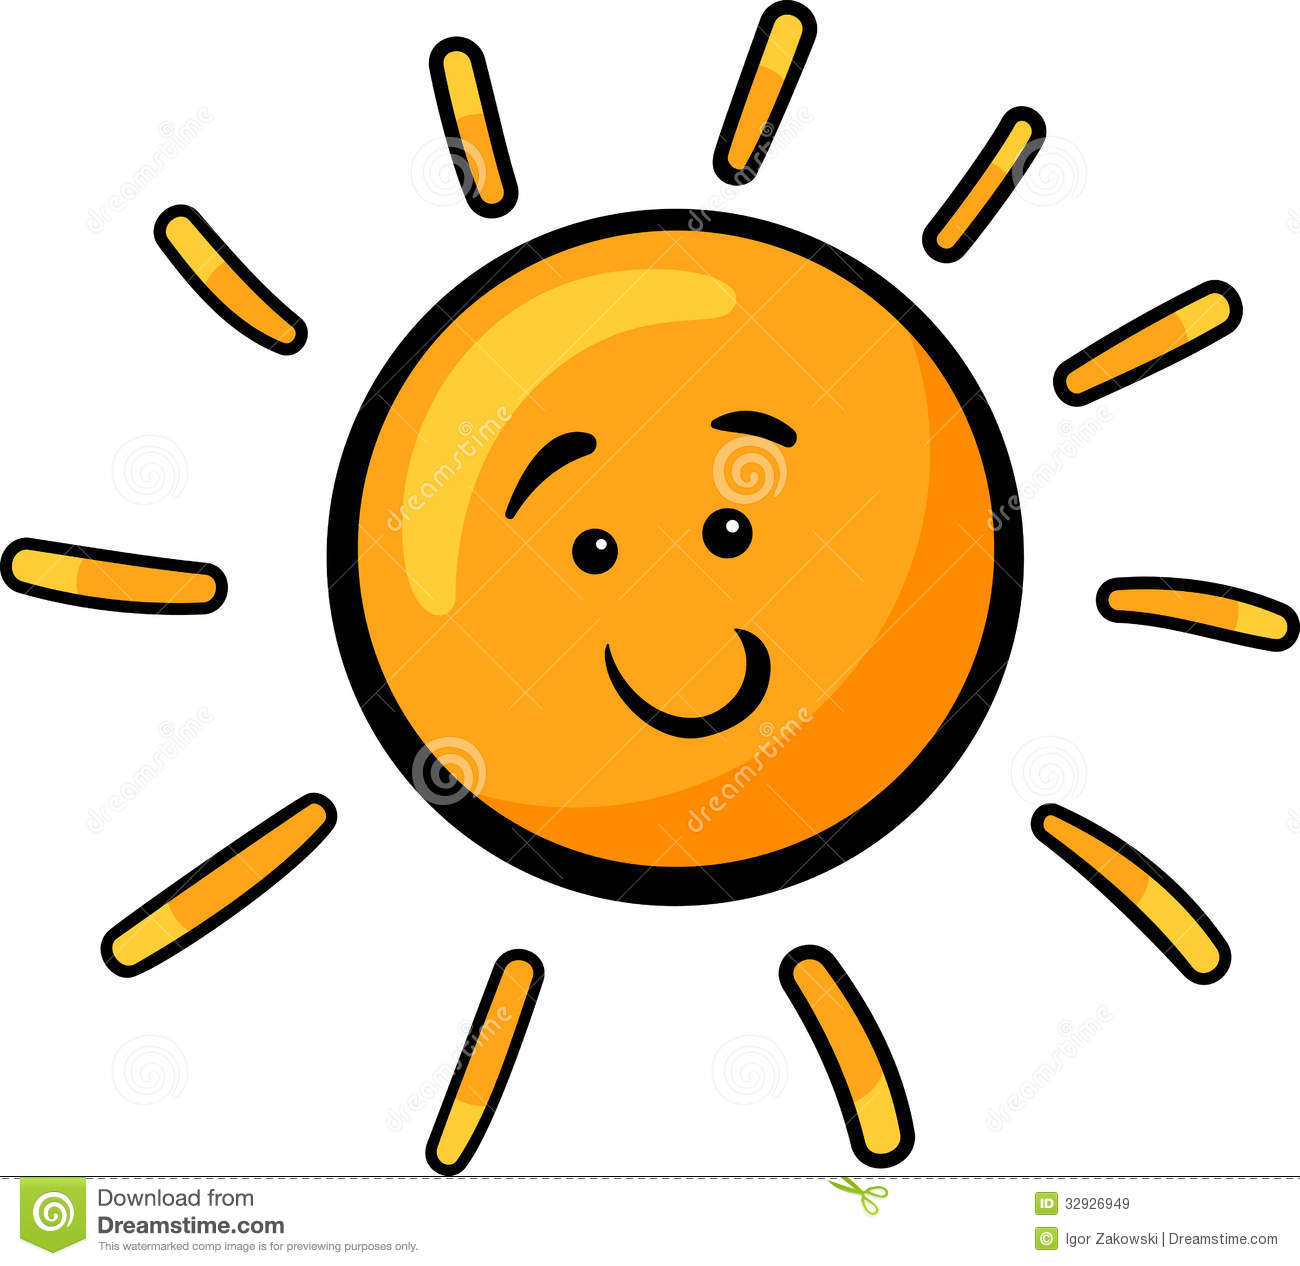 sun clip art cartoon illustration stock vector illustration of rh dreamstime com